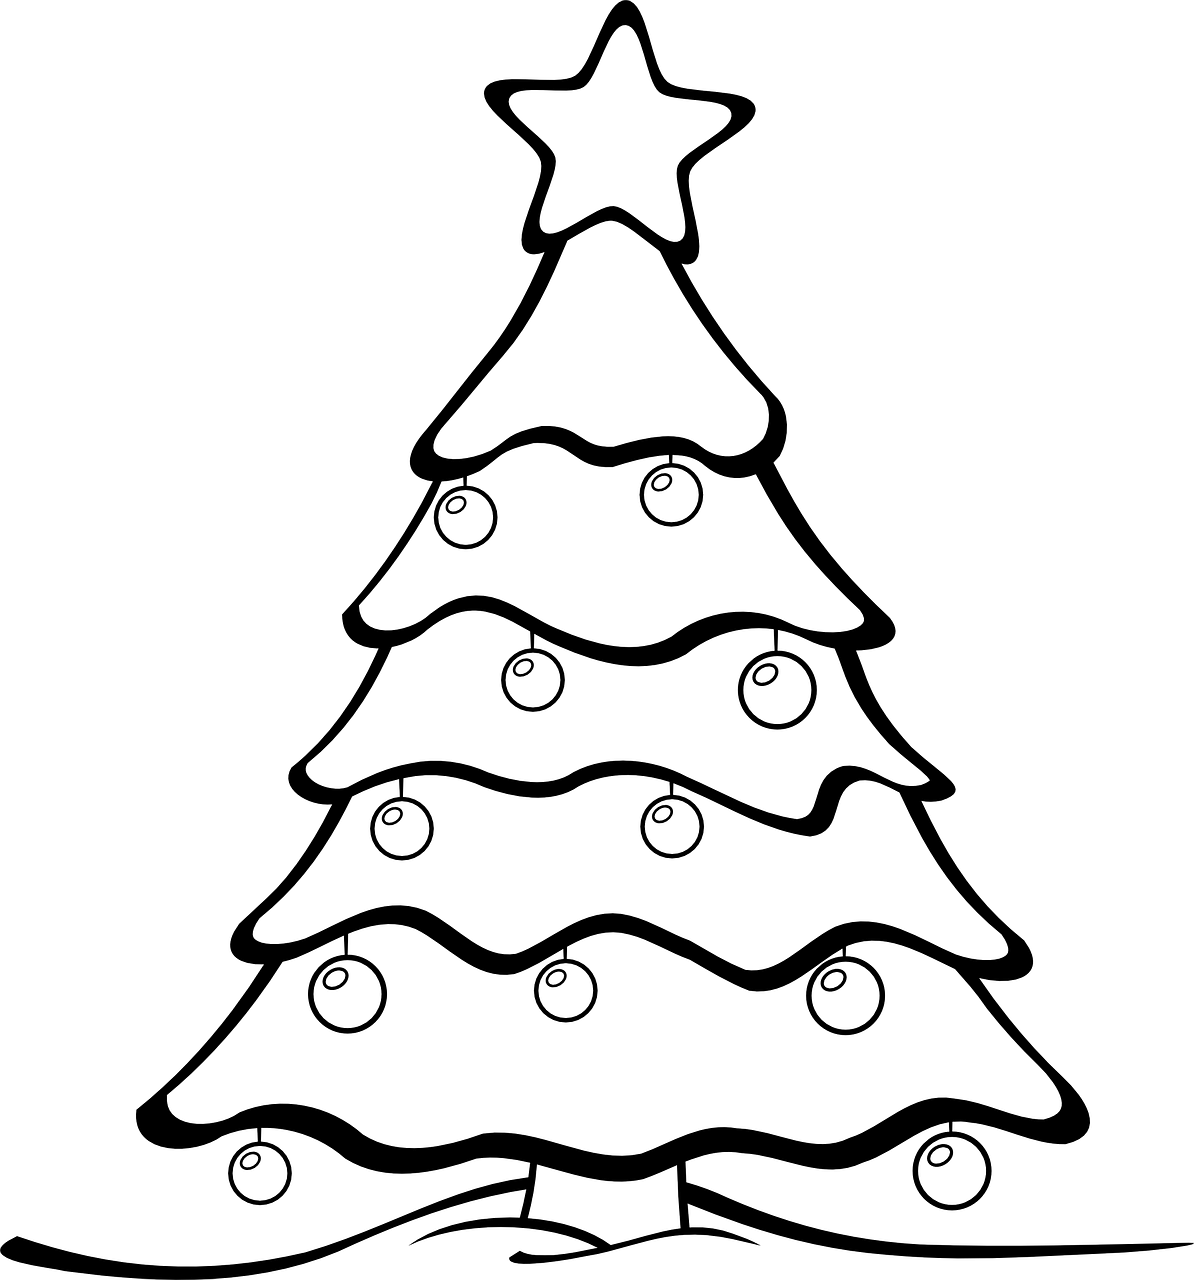 Colour And Design Your Own Christmas Tree Printables In The Playroom Christmas Tree Coloring Page Christmas Tree Drawing Free Christmas Coloring Pages